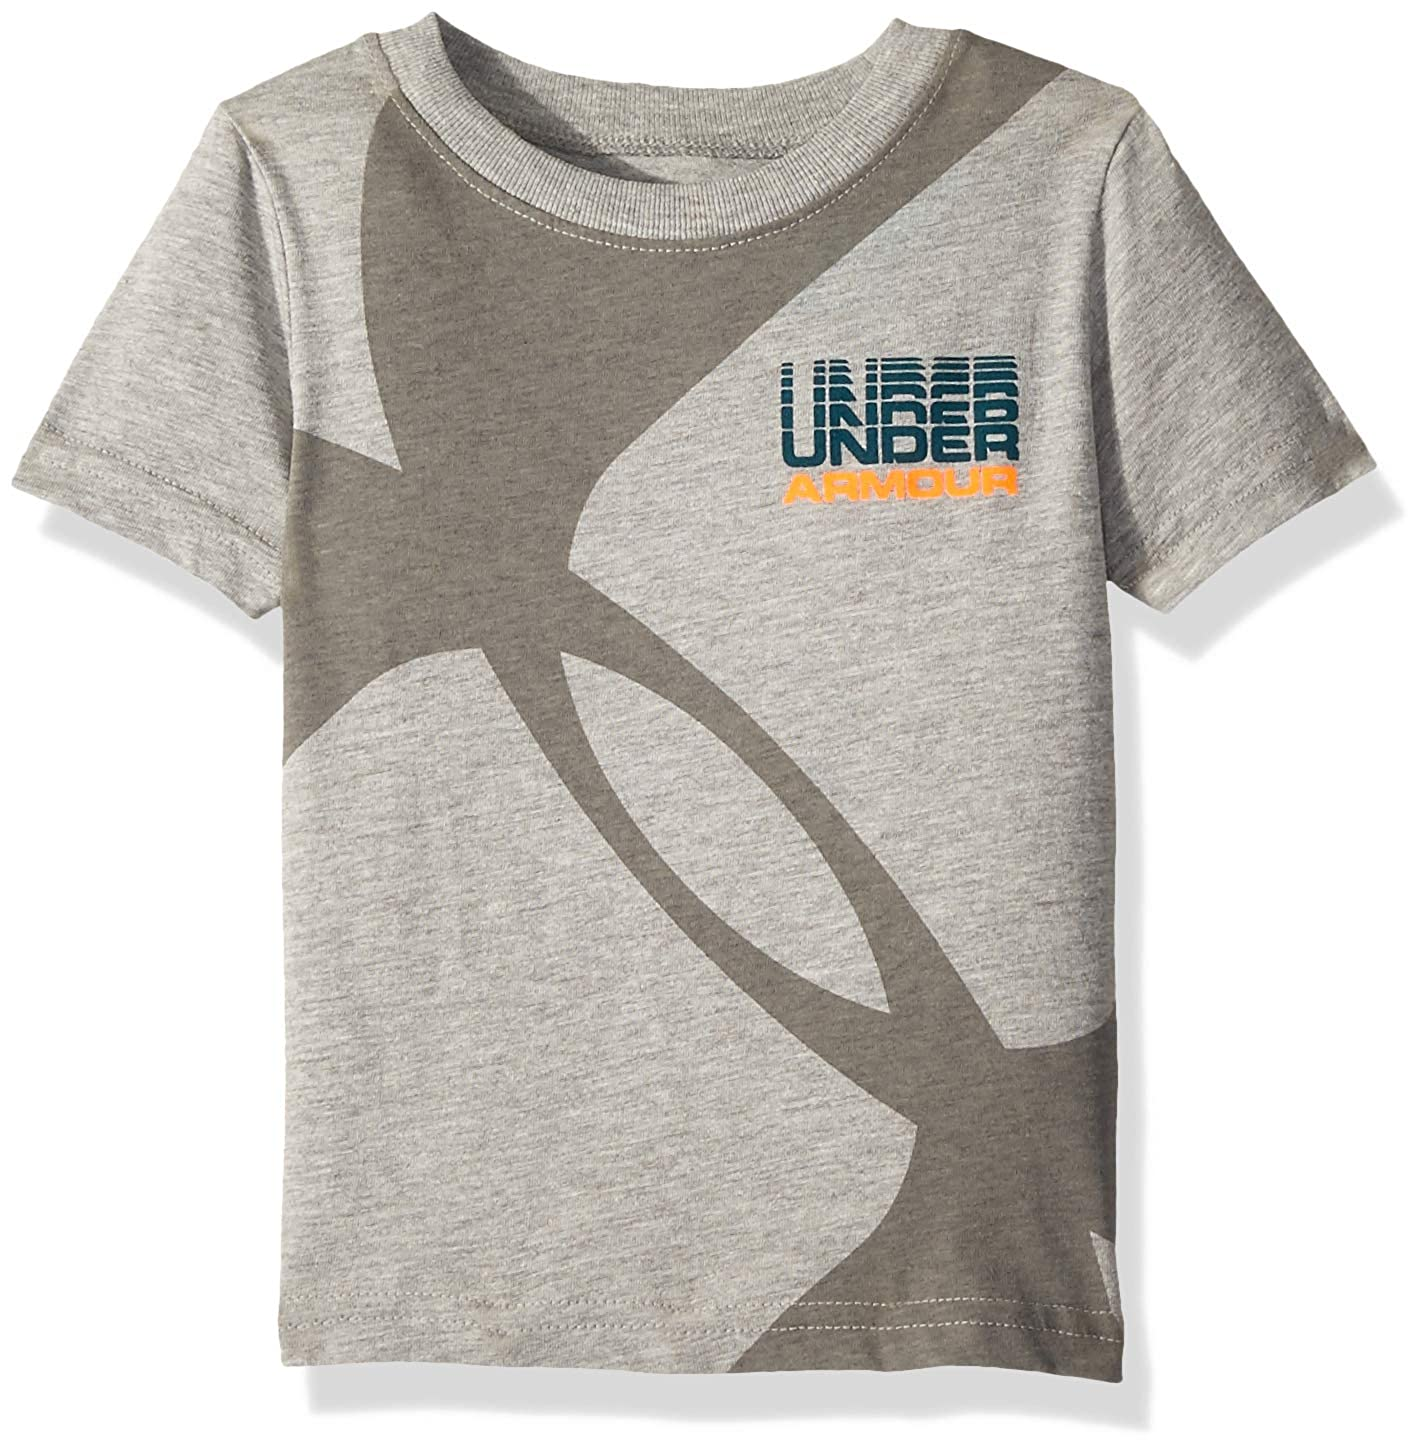 Under Armour Baby Boys Big Logo Short Sleeve Tee Shirt